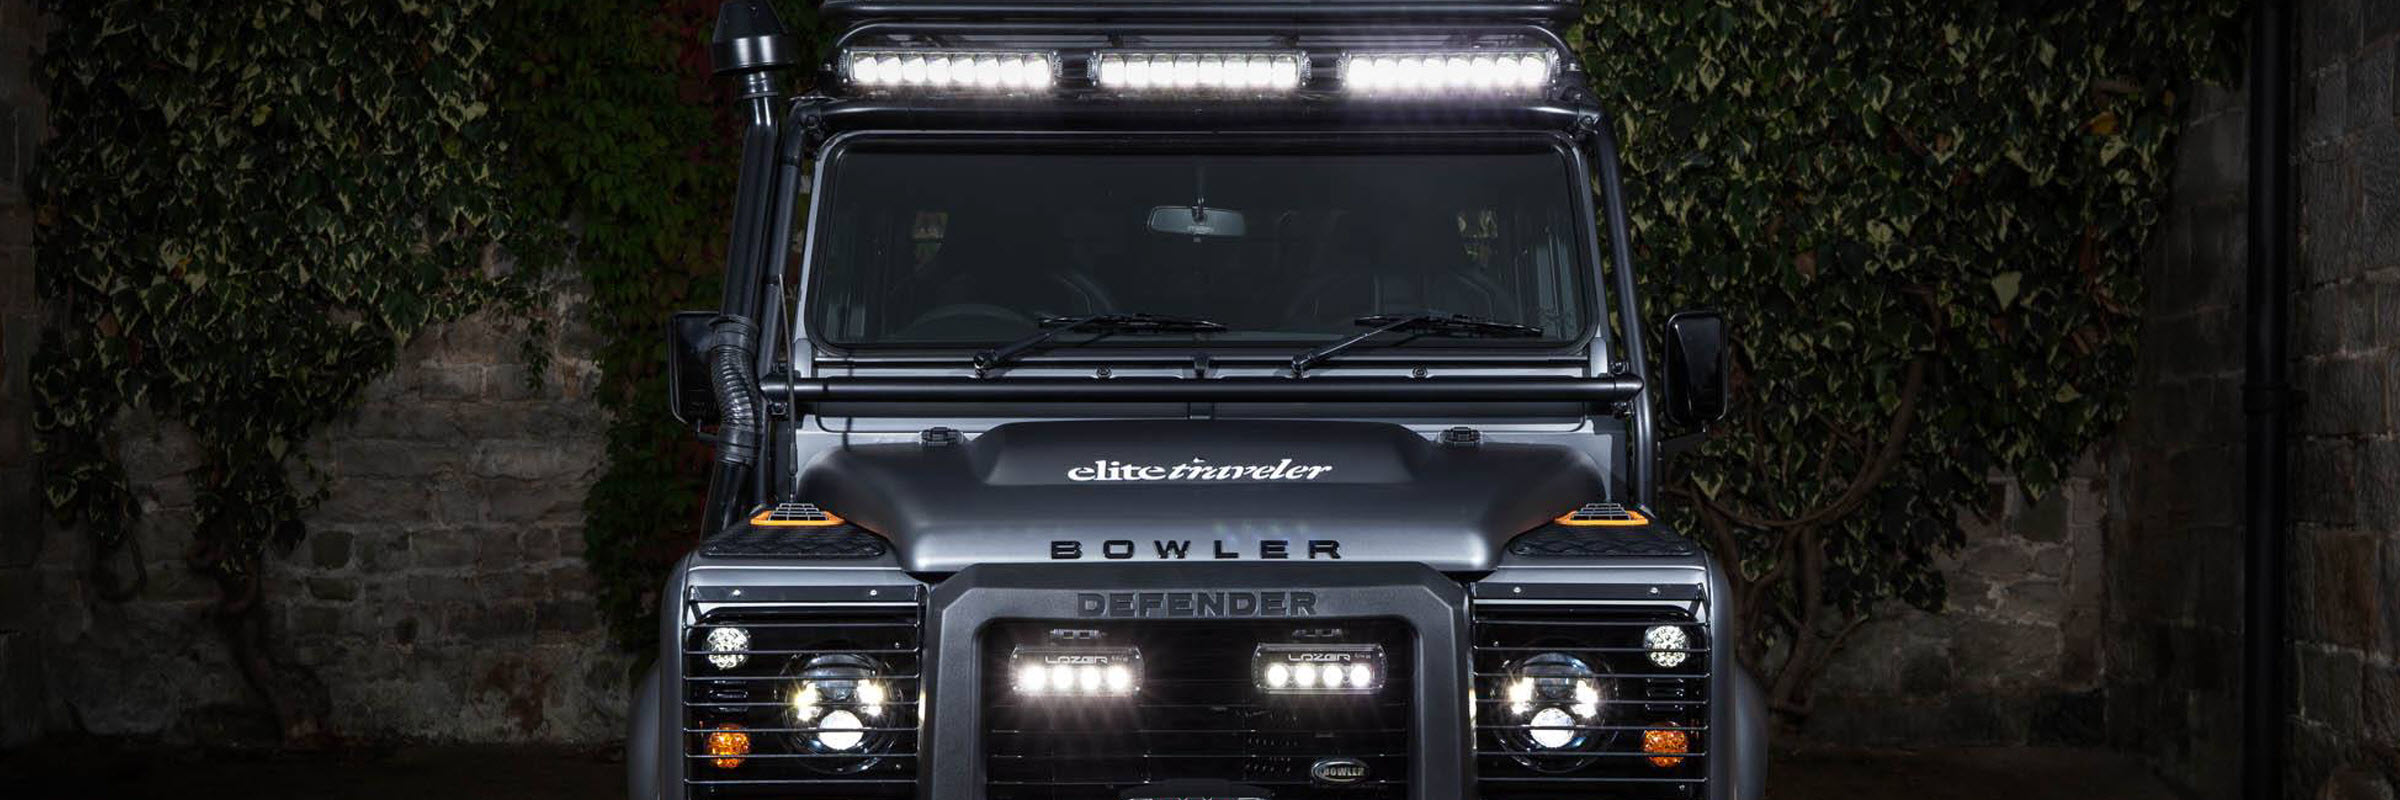 LED Offroadlampen von Lazer Light